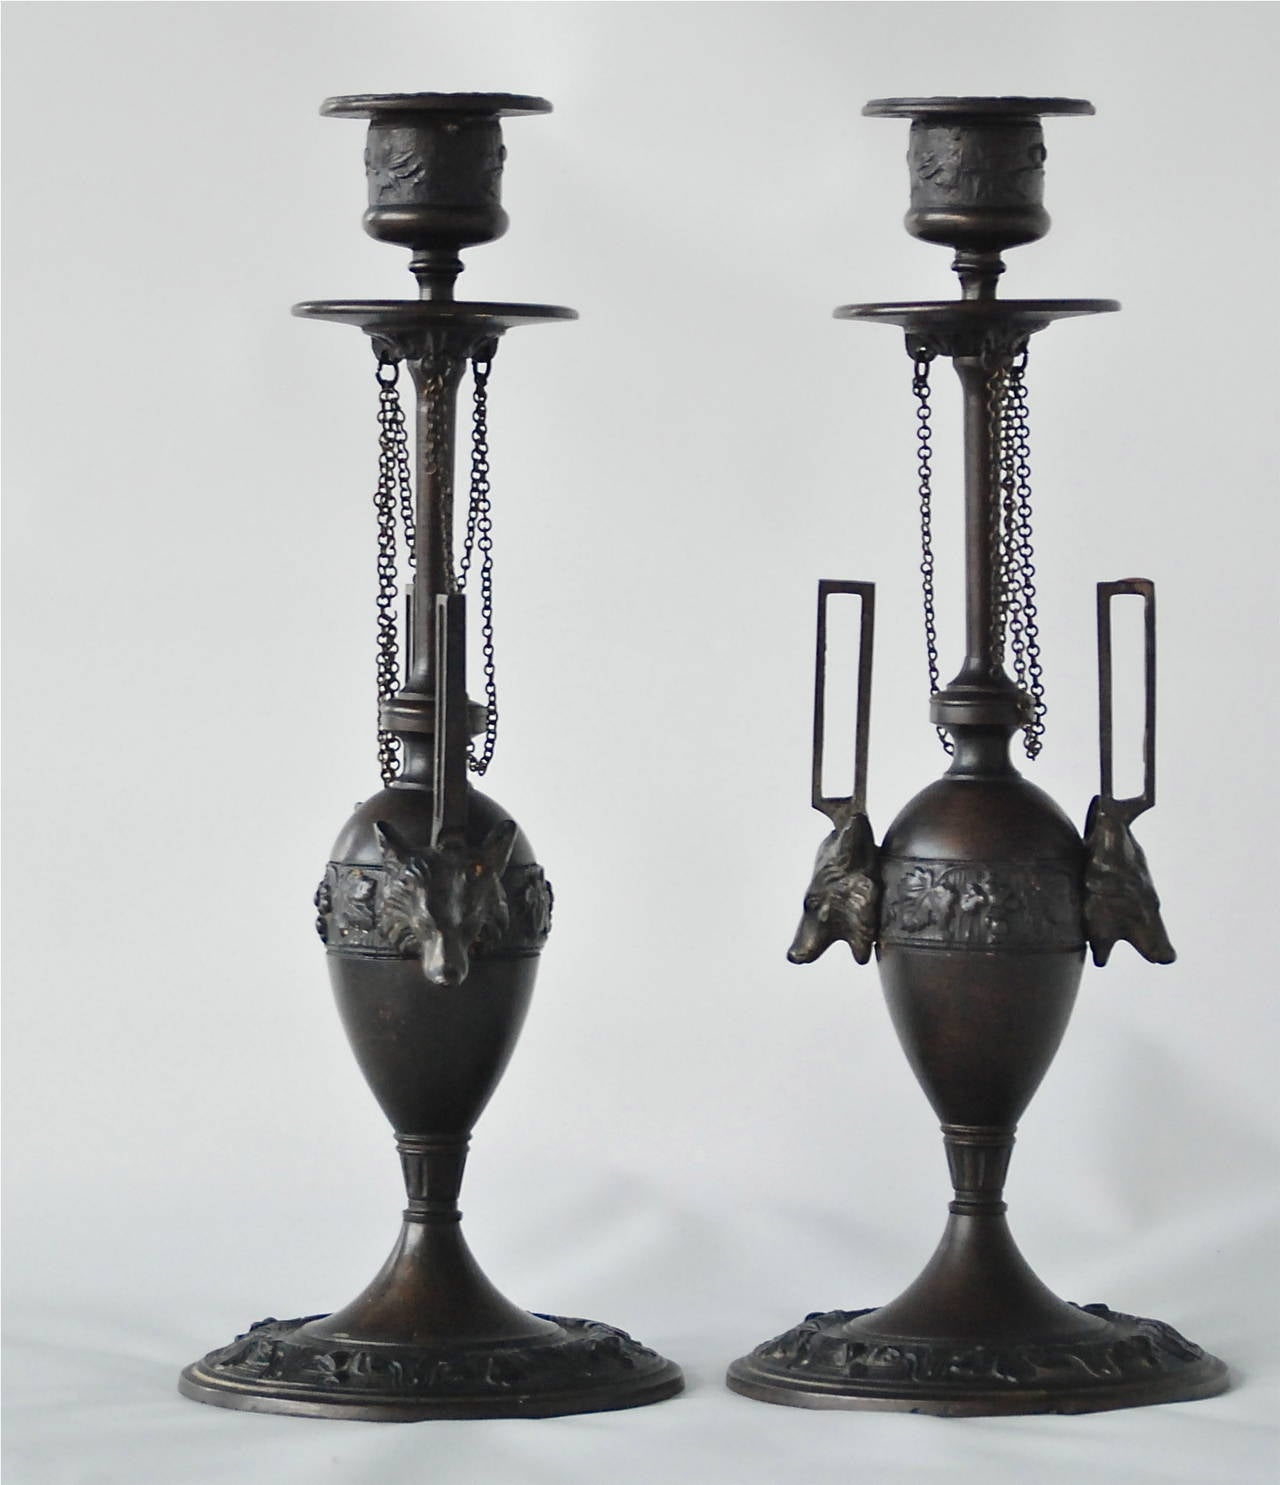 Pair of Candleholders by F. L. Vombach 3